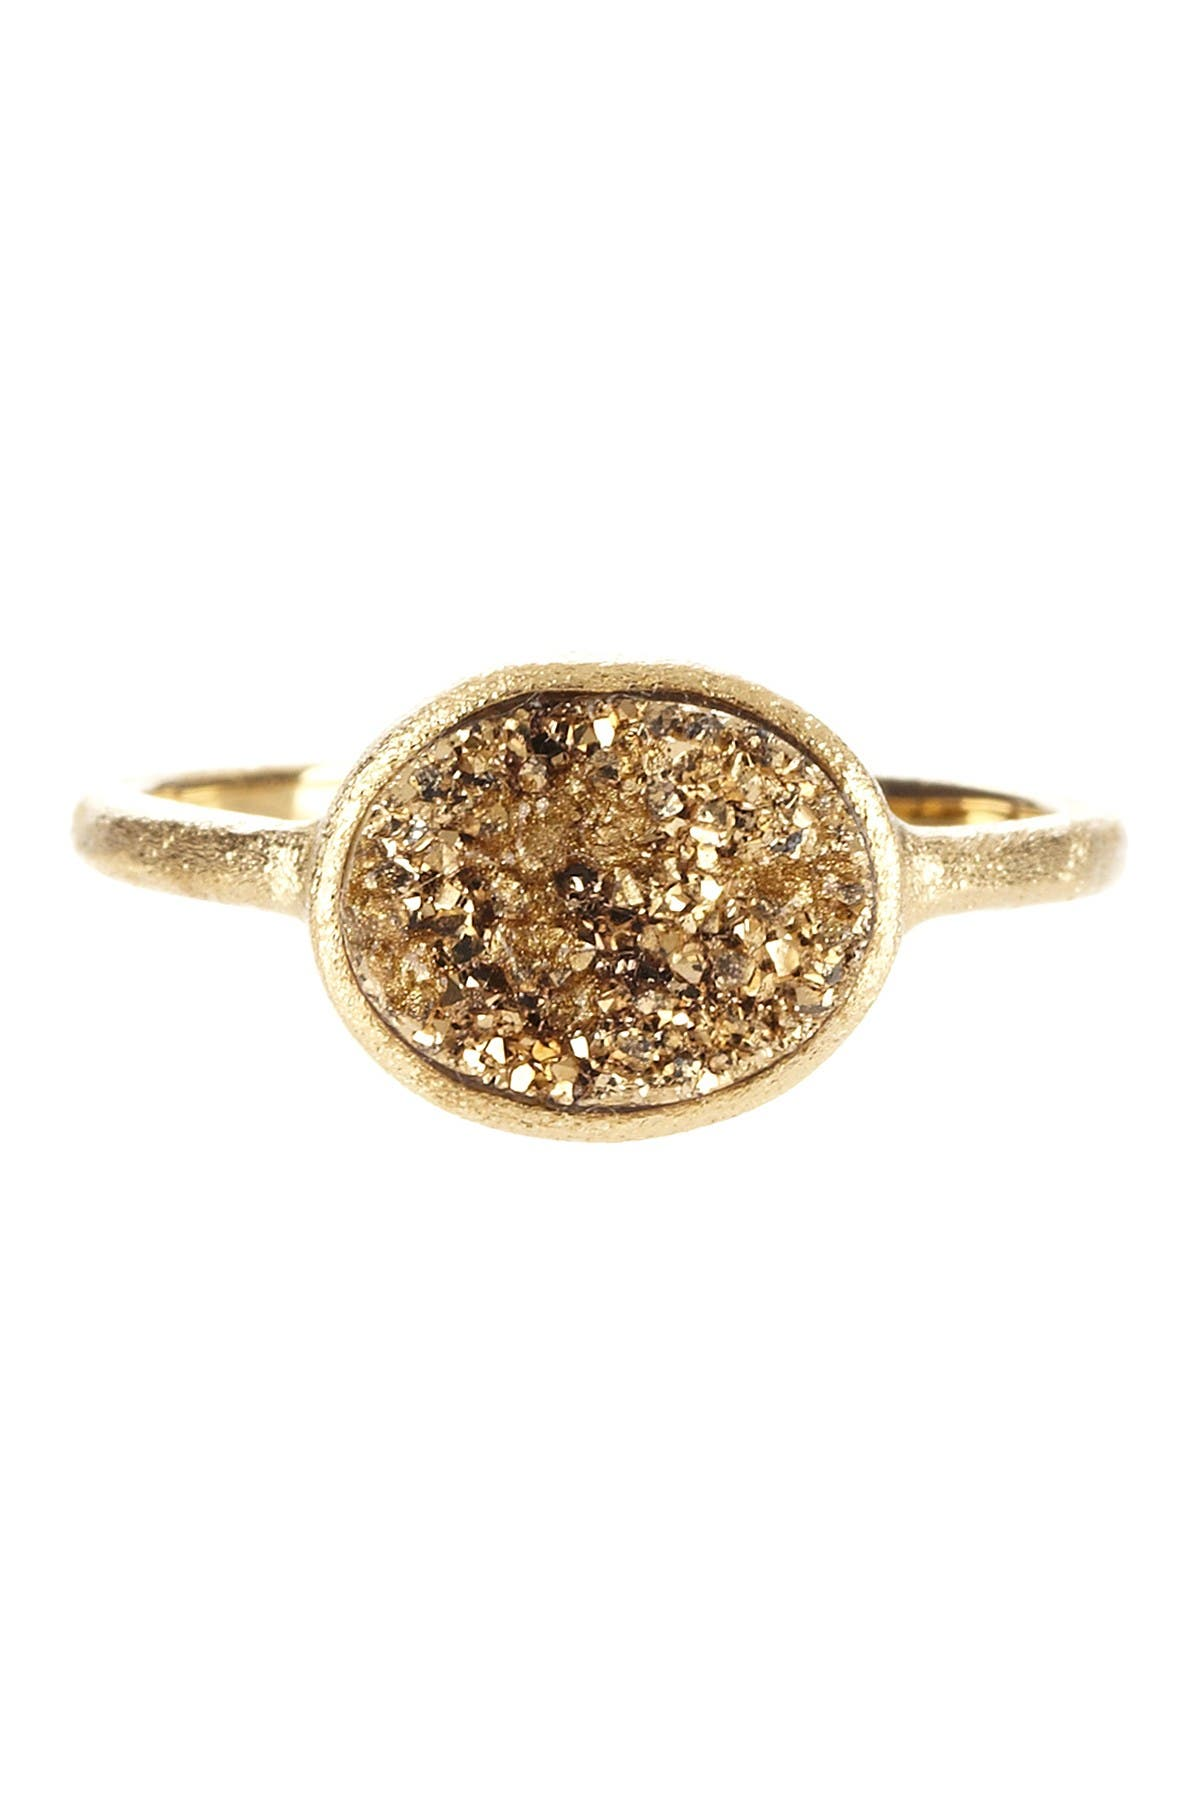 Rivka Friedman 18K Gold Clad East-West Gold Druzy Oval Ring at Nordstrom Rack